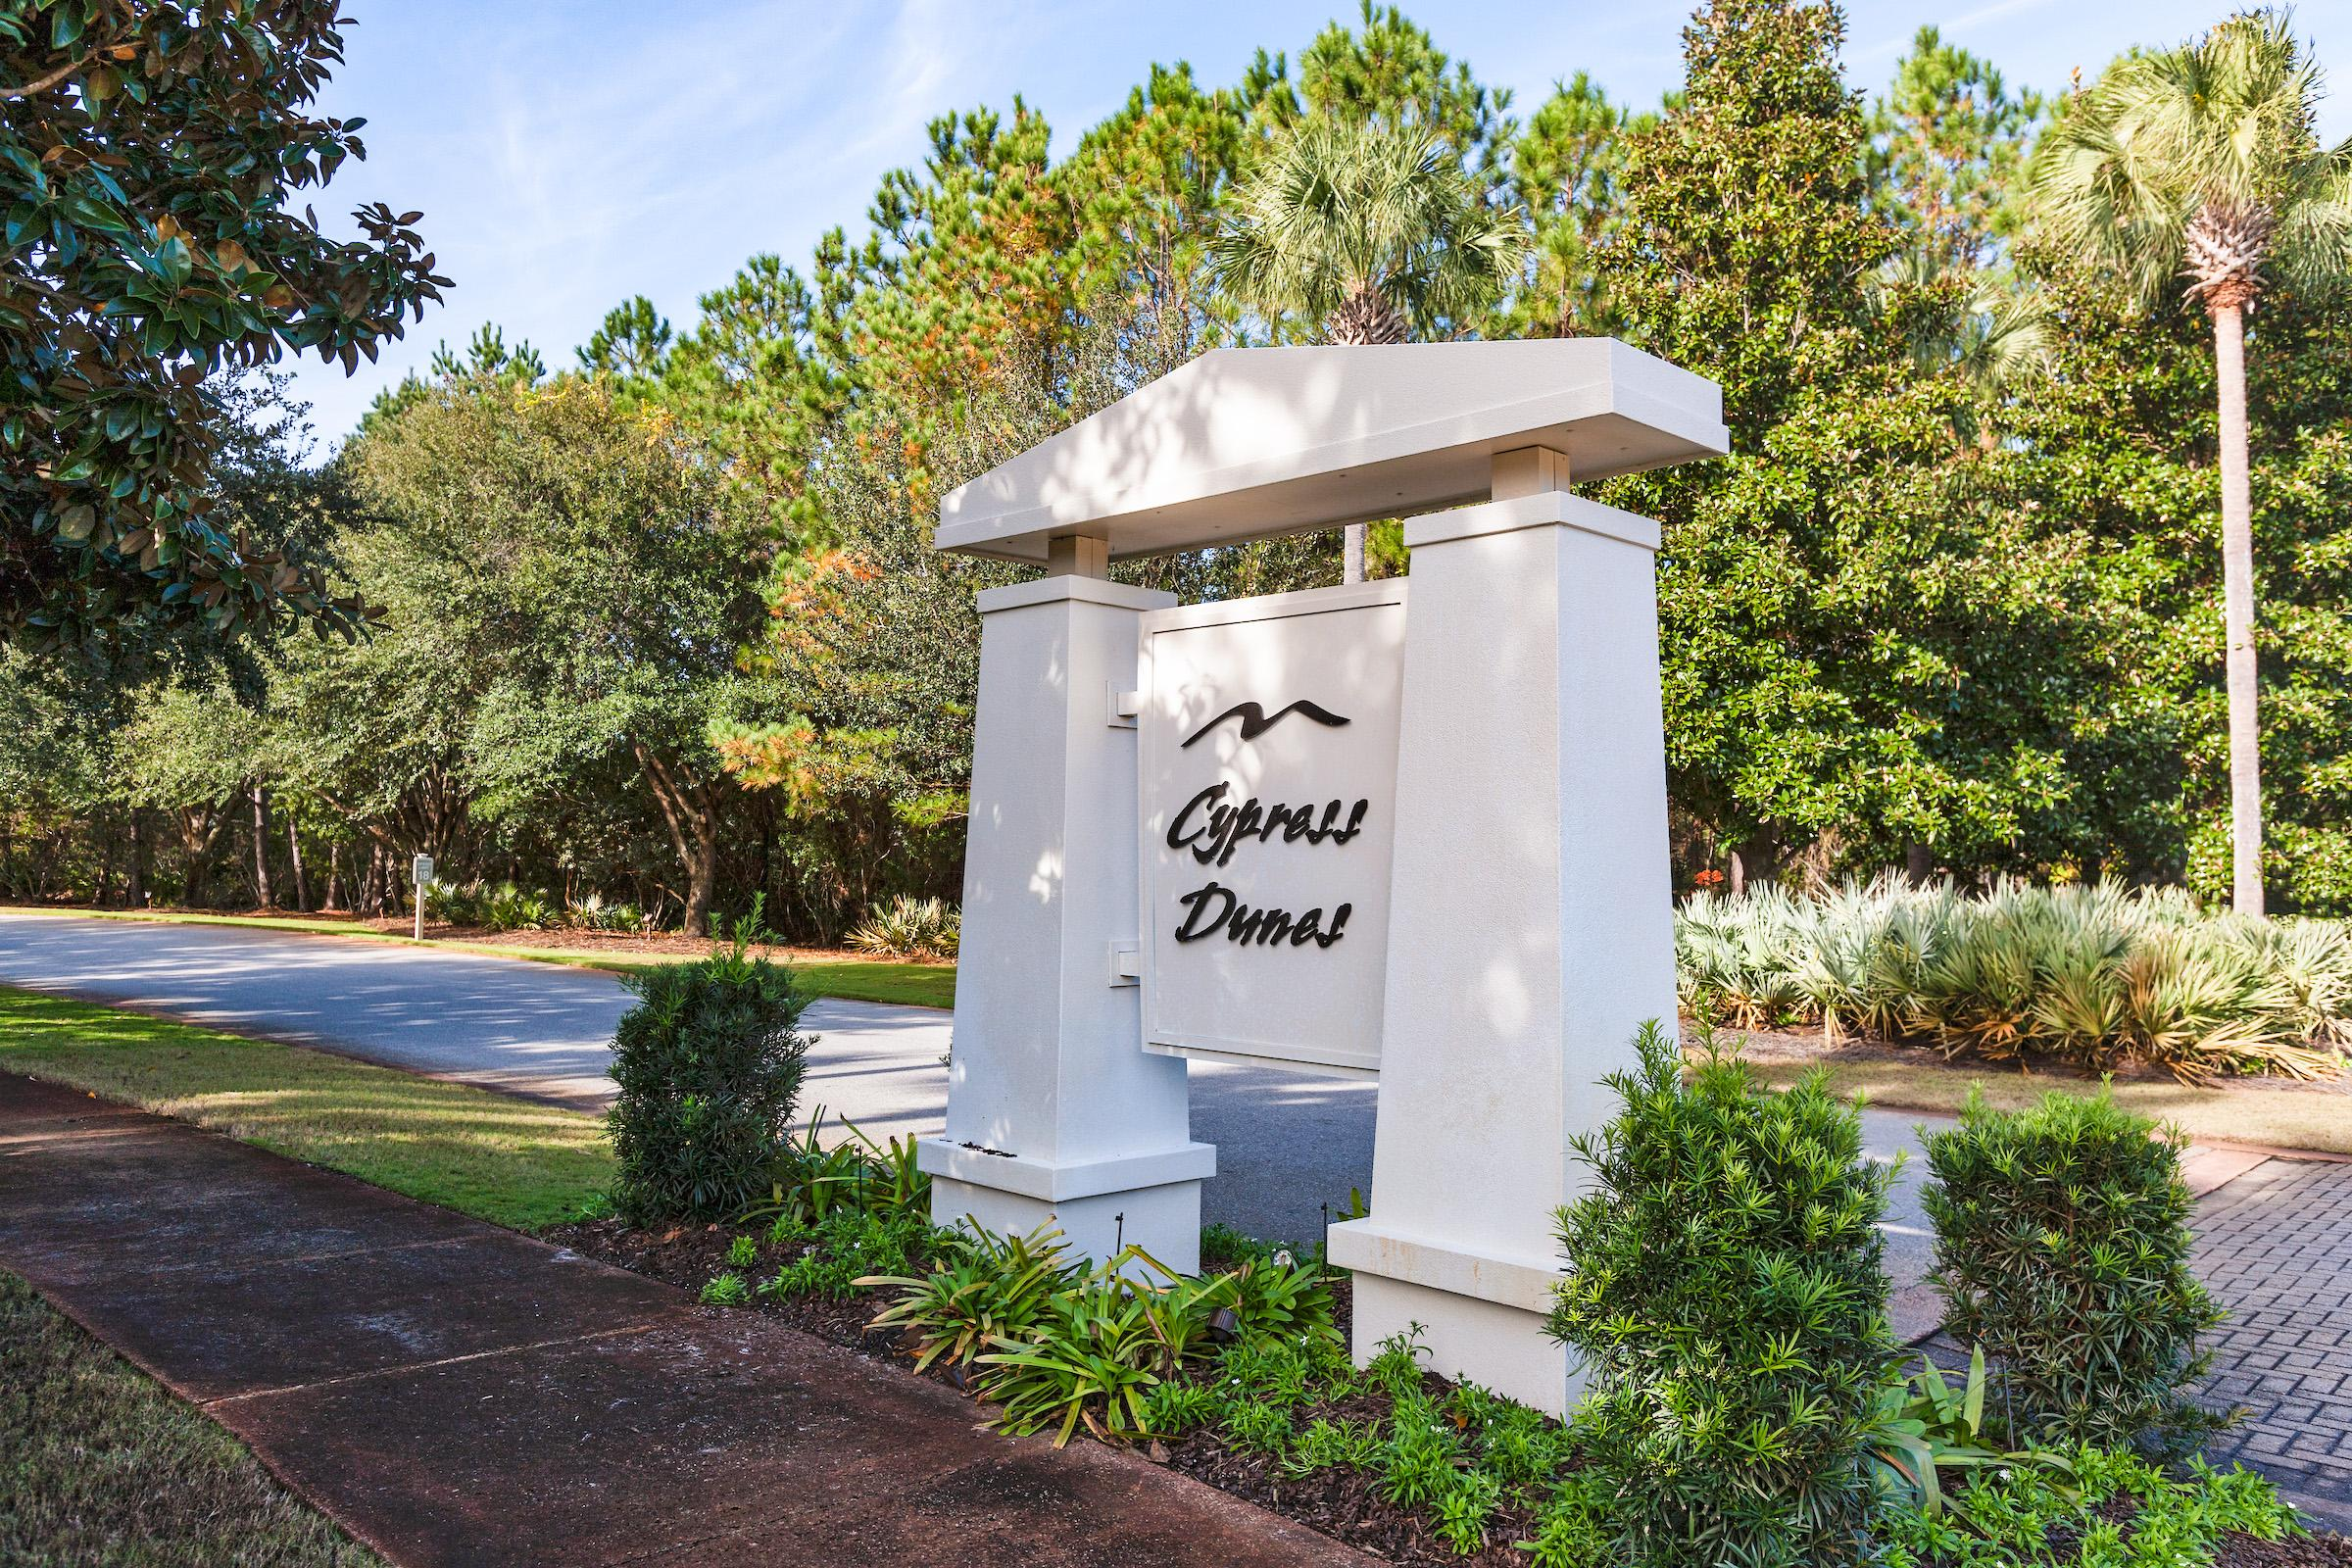 This property is located in the gated Cypress Dunes community.